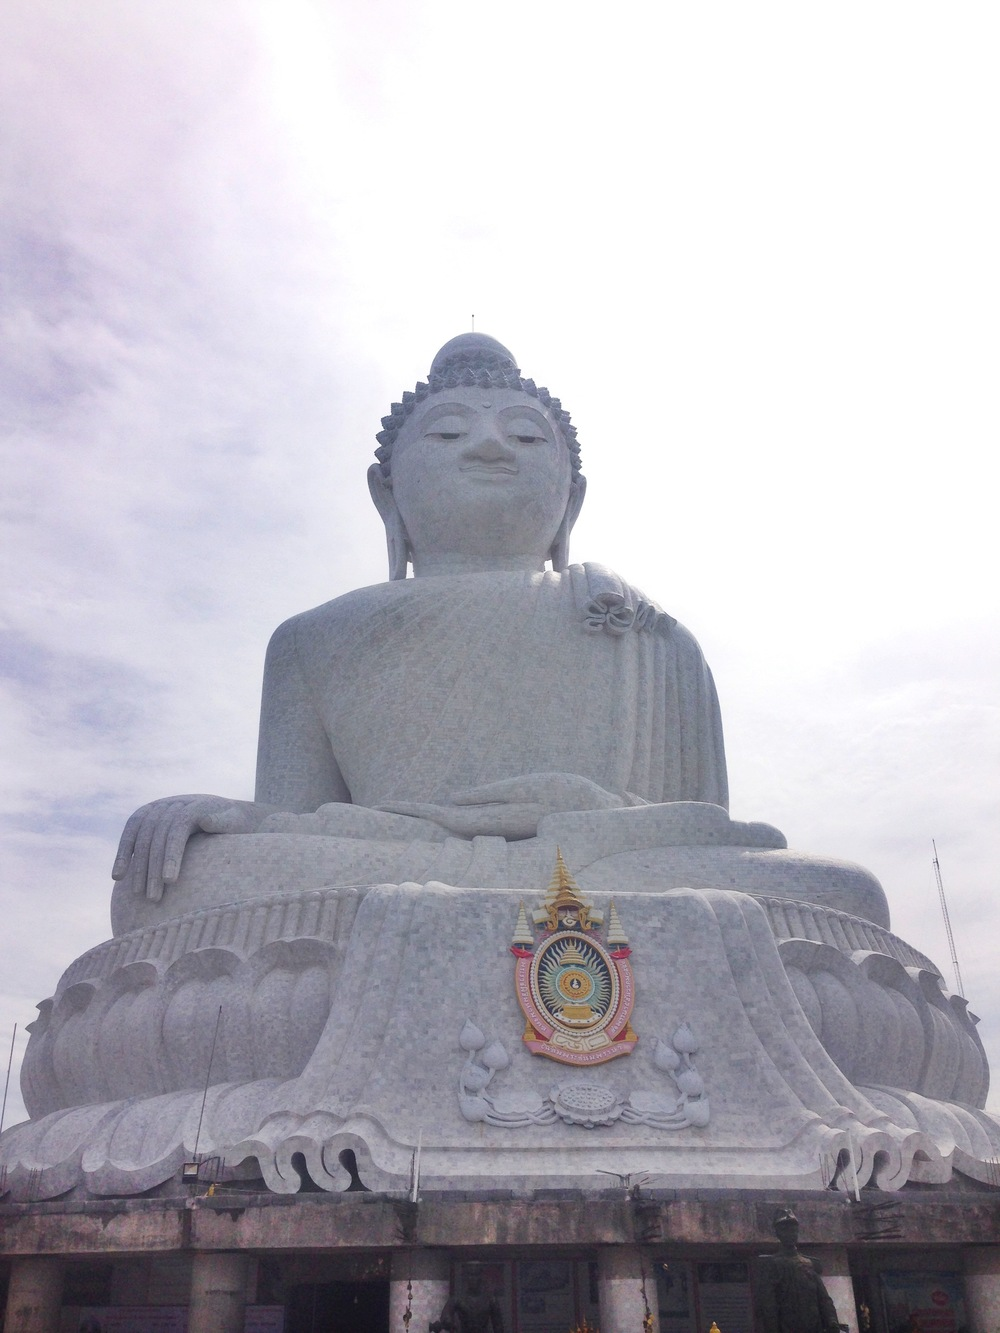 Big Buddha, made entirely of white marble